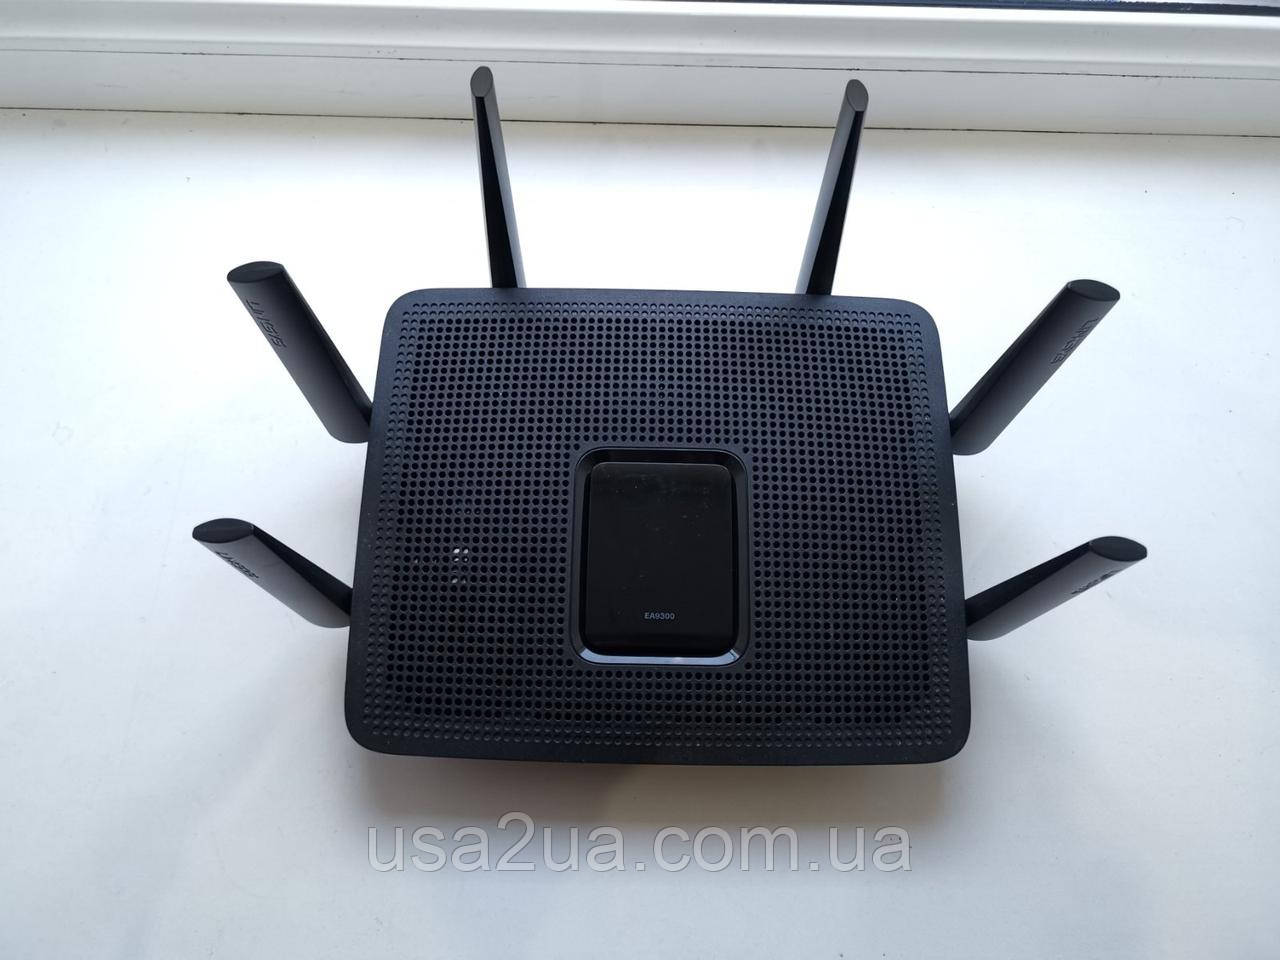 Маршрутизатор Роутер Cisco Linksys EA 9300 4000 Мбит/с кредит гарантия AC4000 MU-MIMO Tri-Band